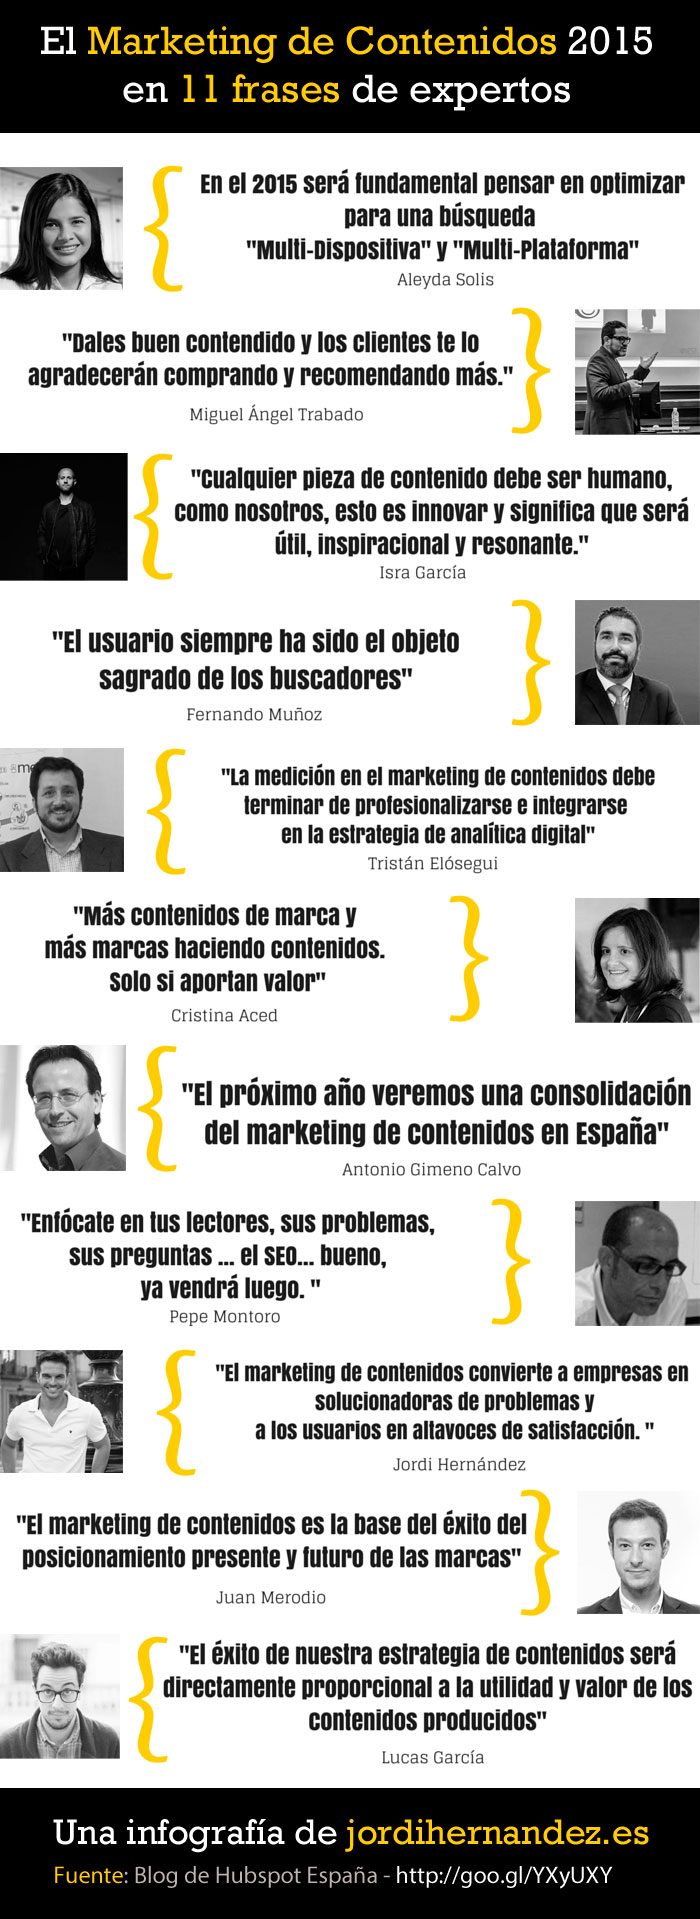 Marketing de contenidos para 2015 en 11 frases